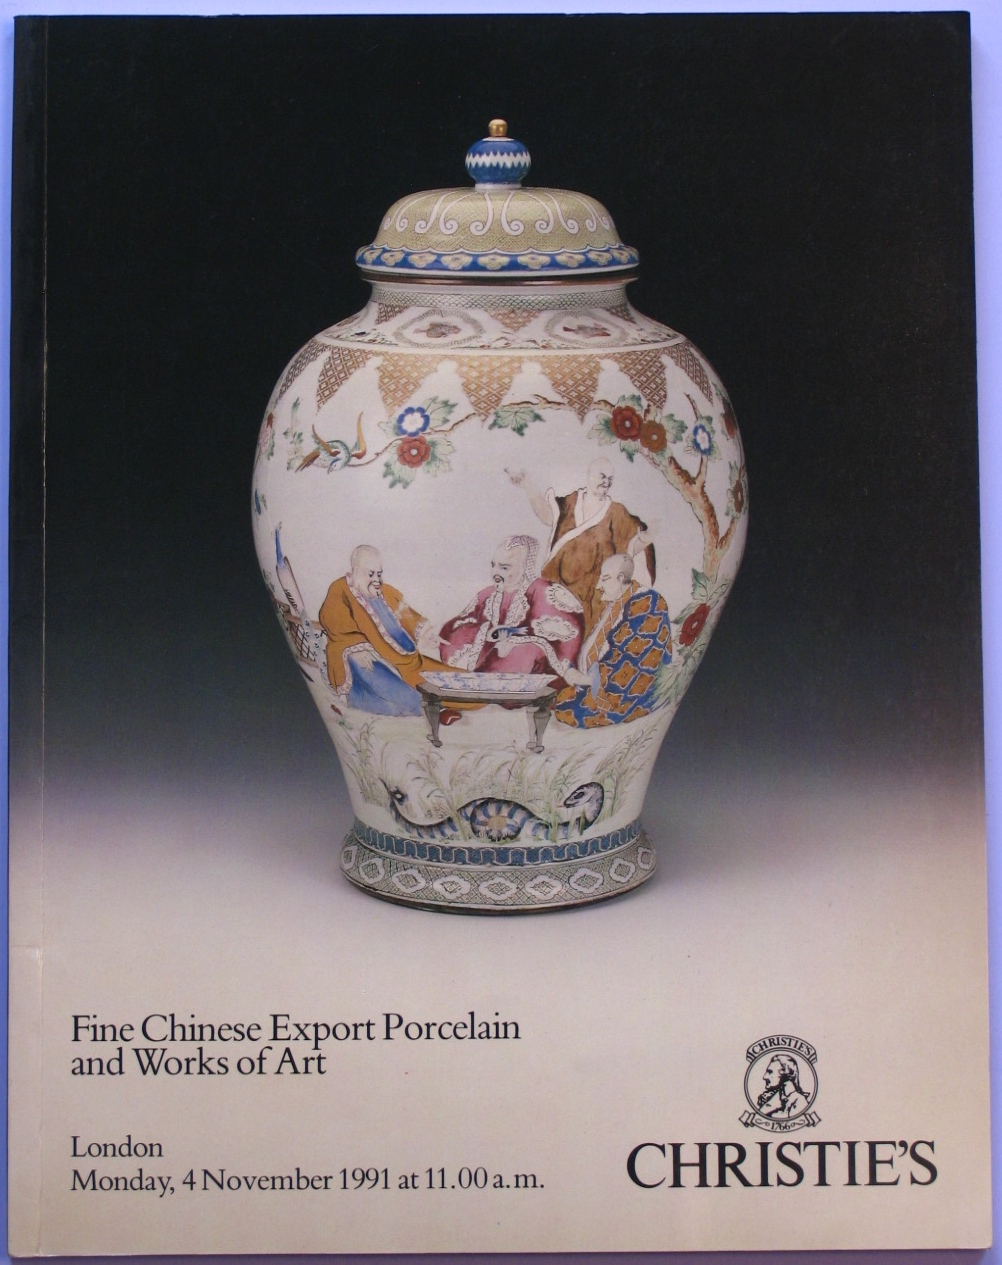 CL19911104: Bookshop: [1991] Chrisitie's Fine Chinese Export Porcelain and Works of Art